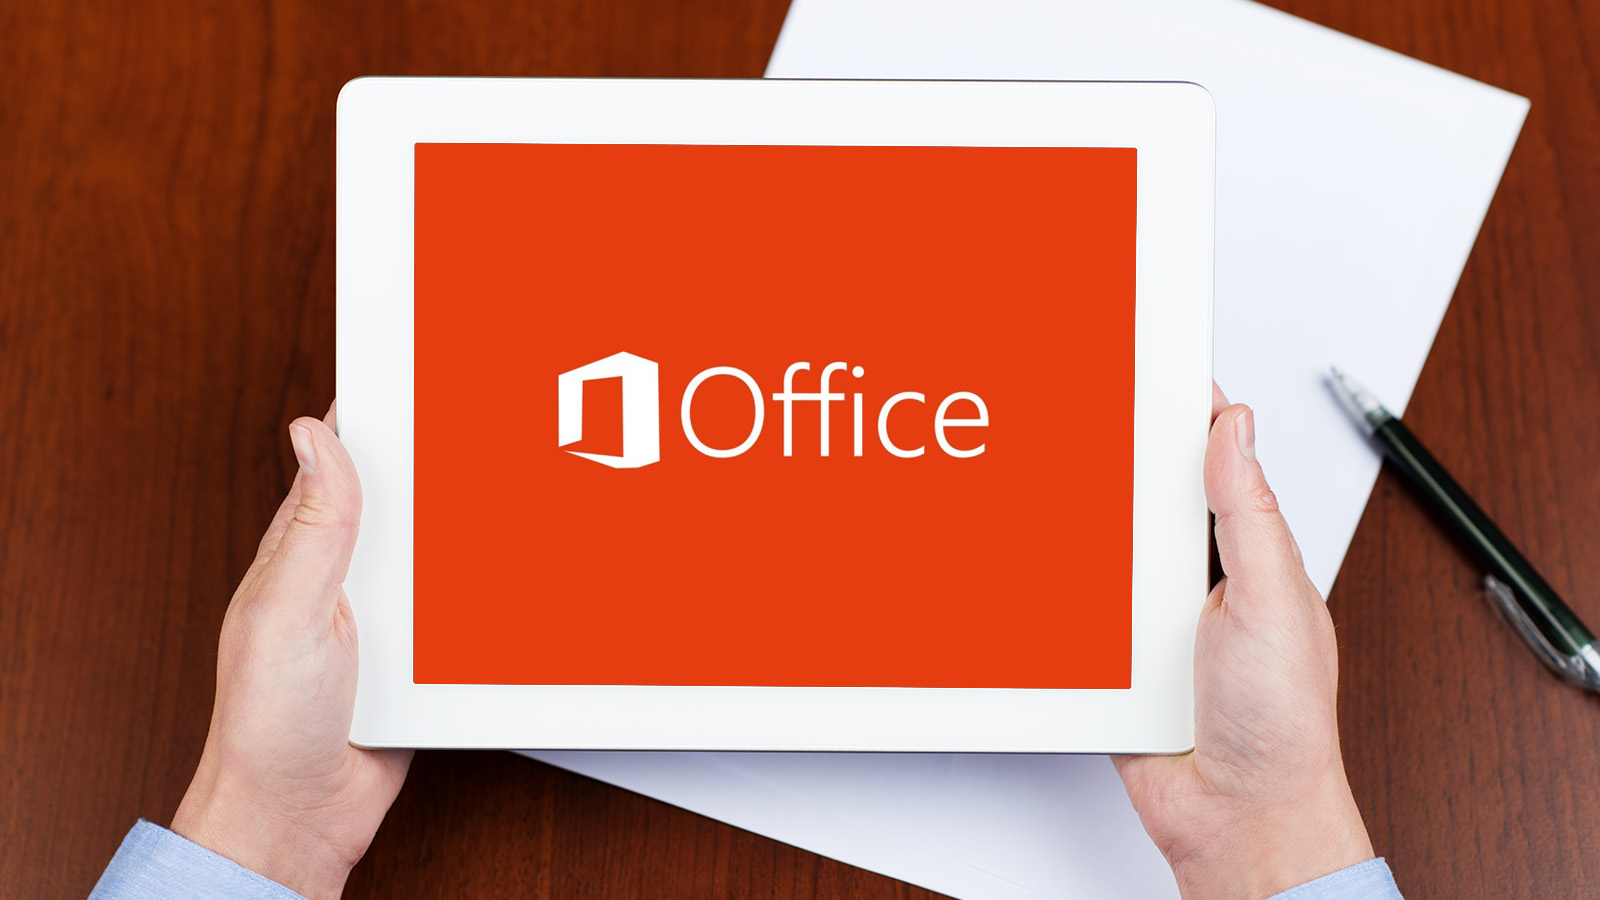 Microsoft reveals Office 2019 will only run on Windows 10 PCs